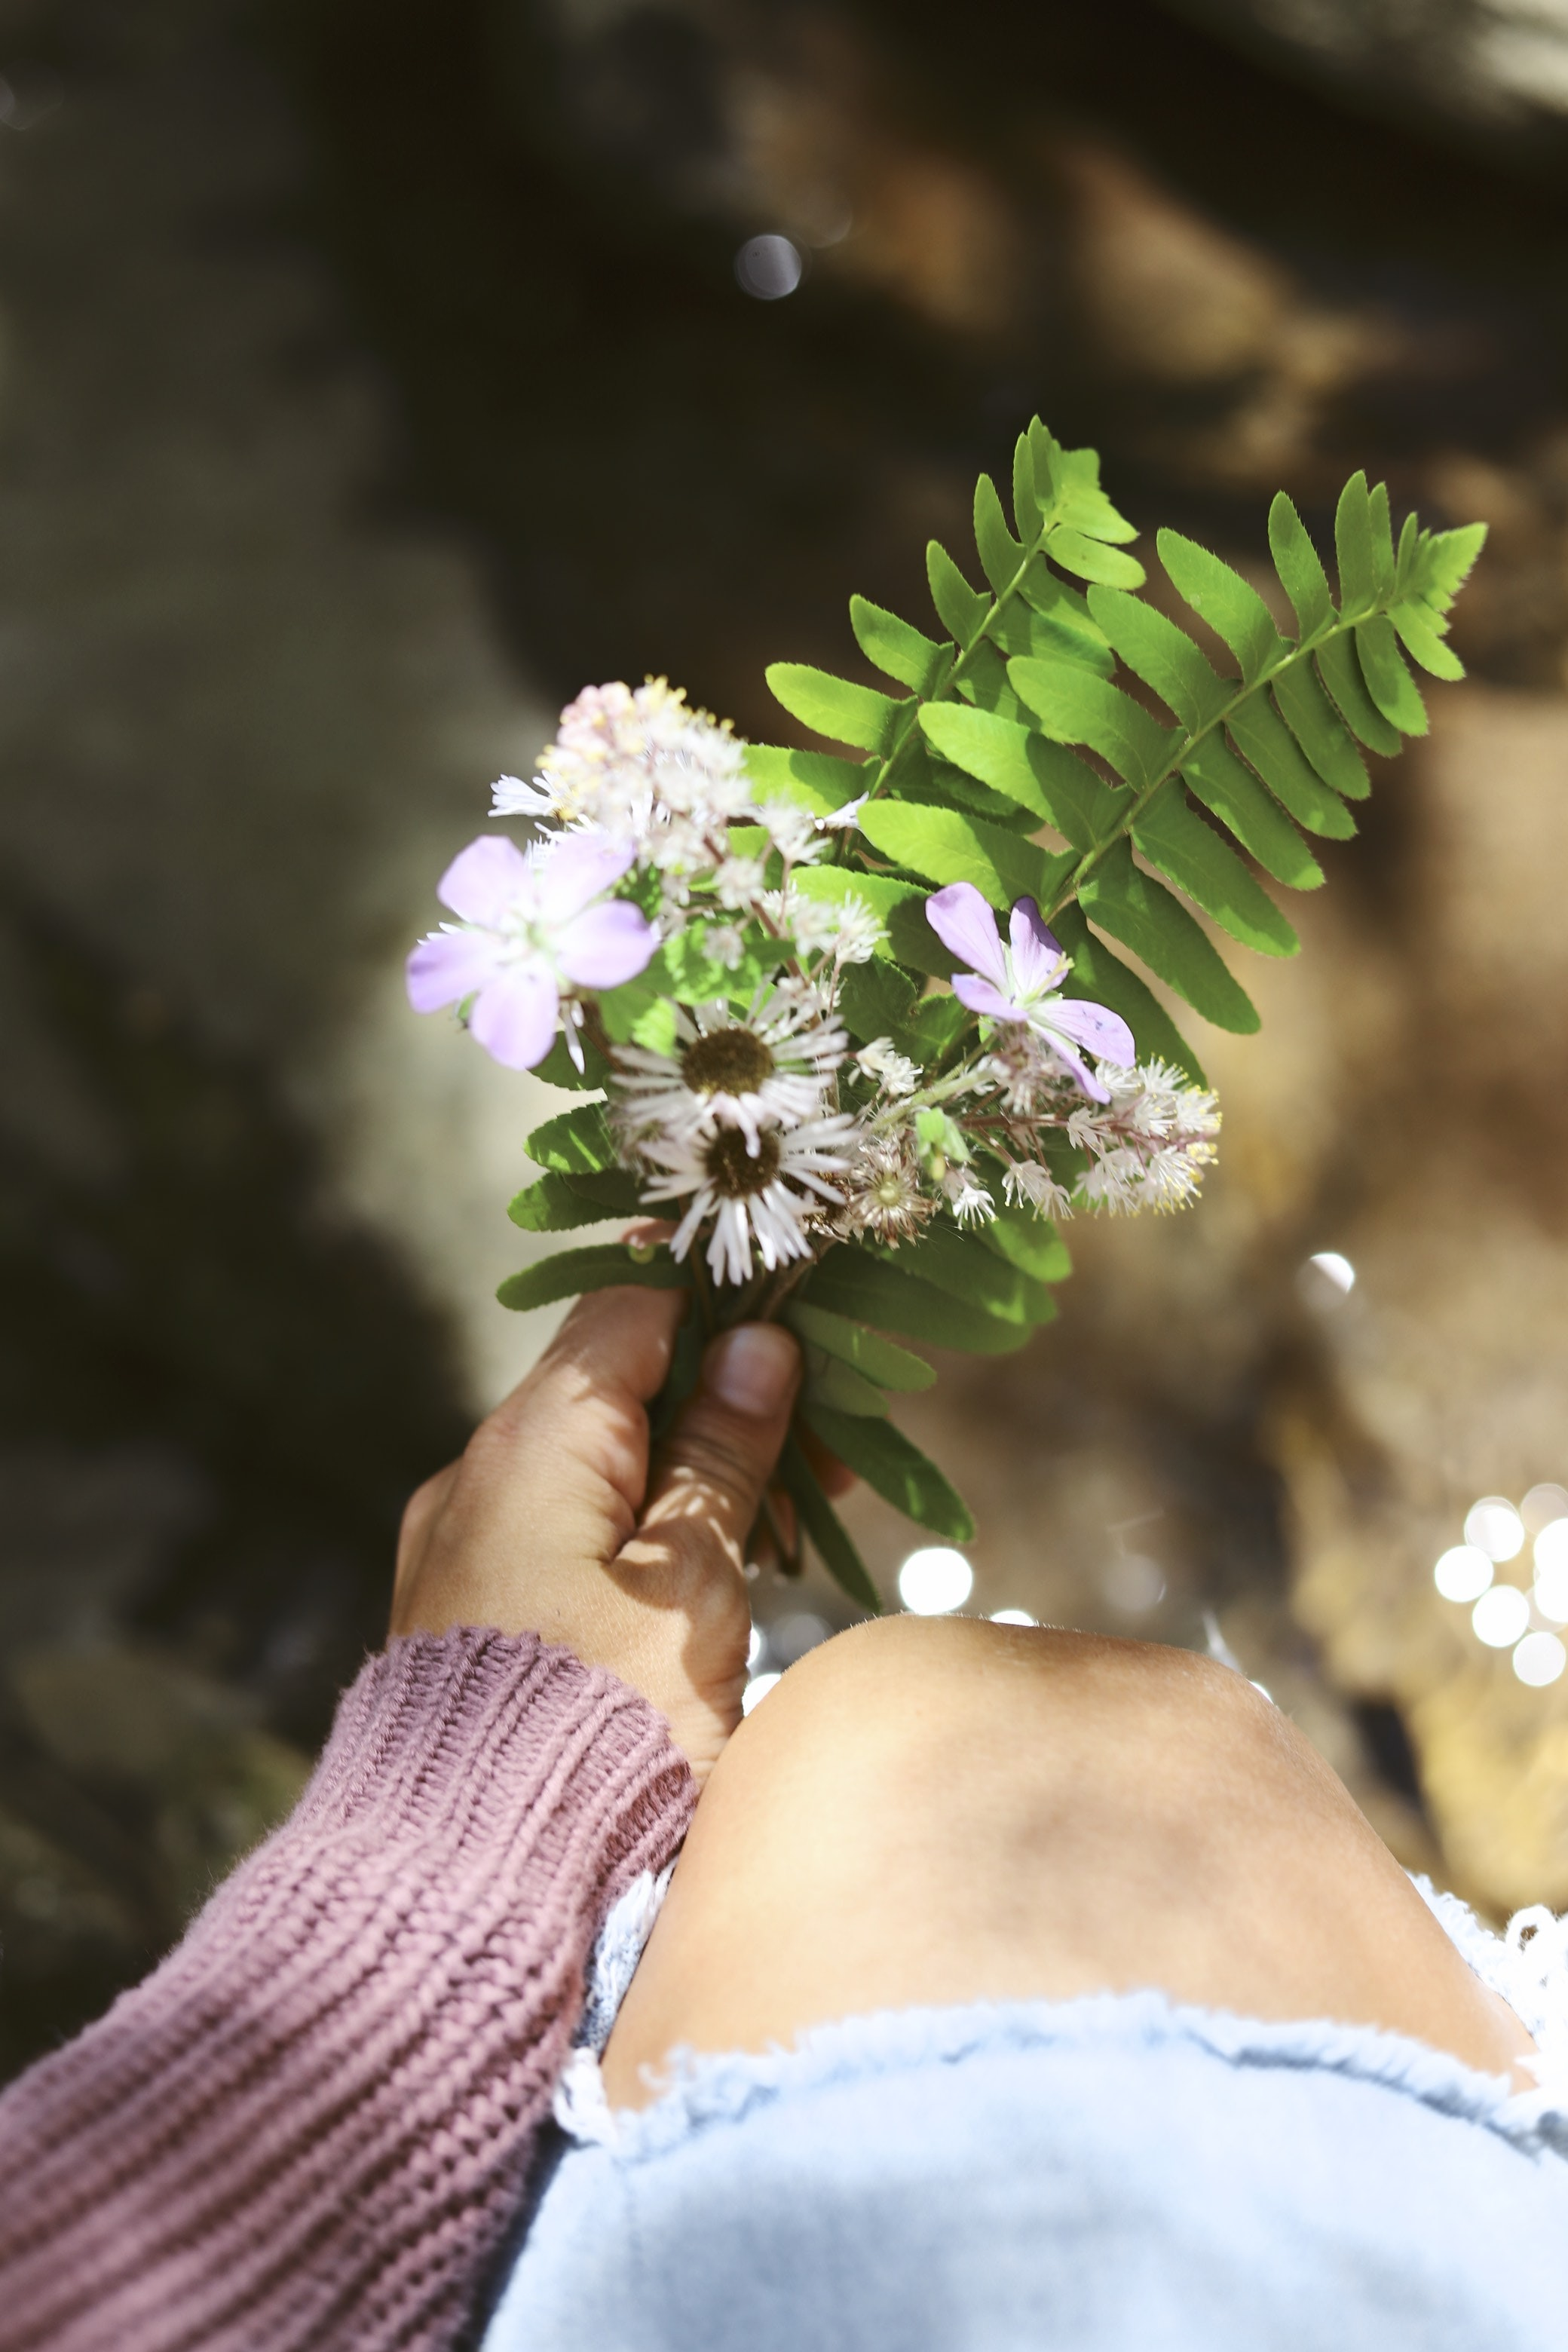 person holding white and purple flowers